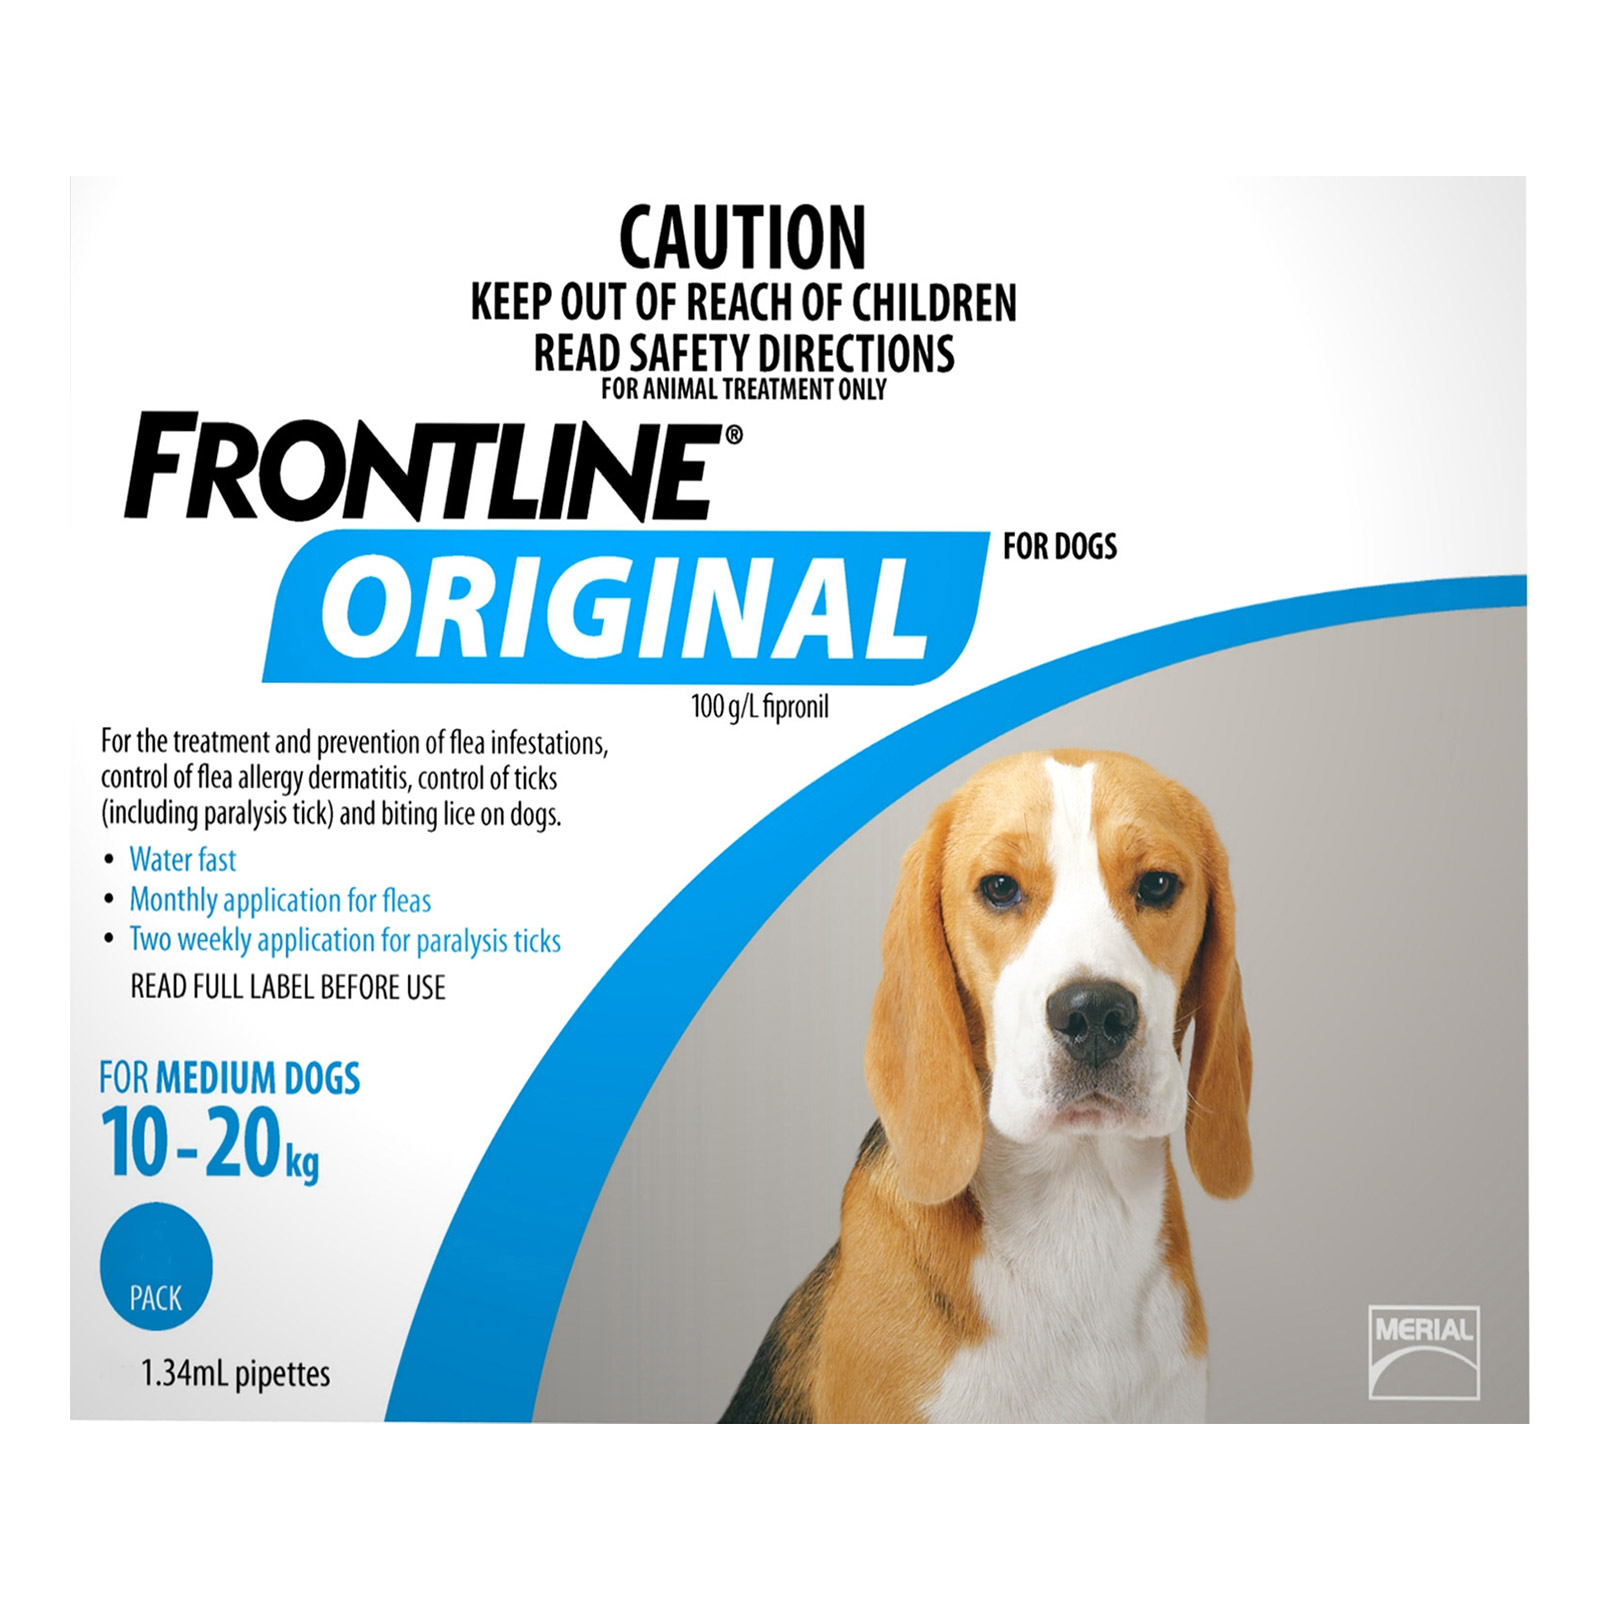 frontline-original-medium-dogs-10-to-20kg.jpg